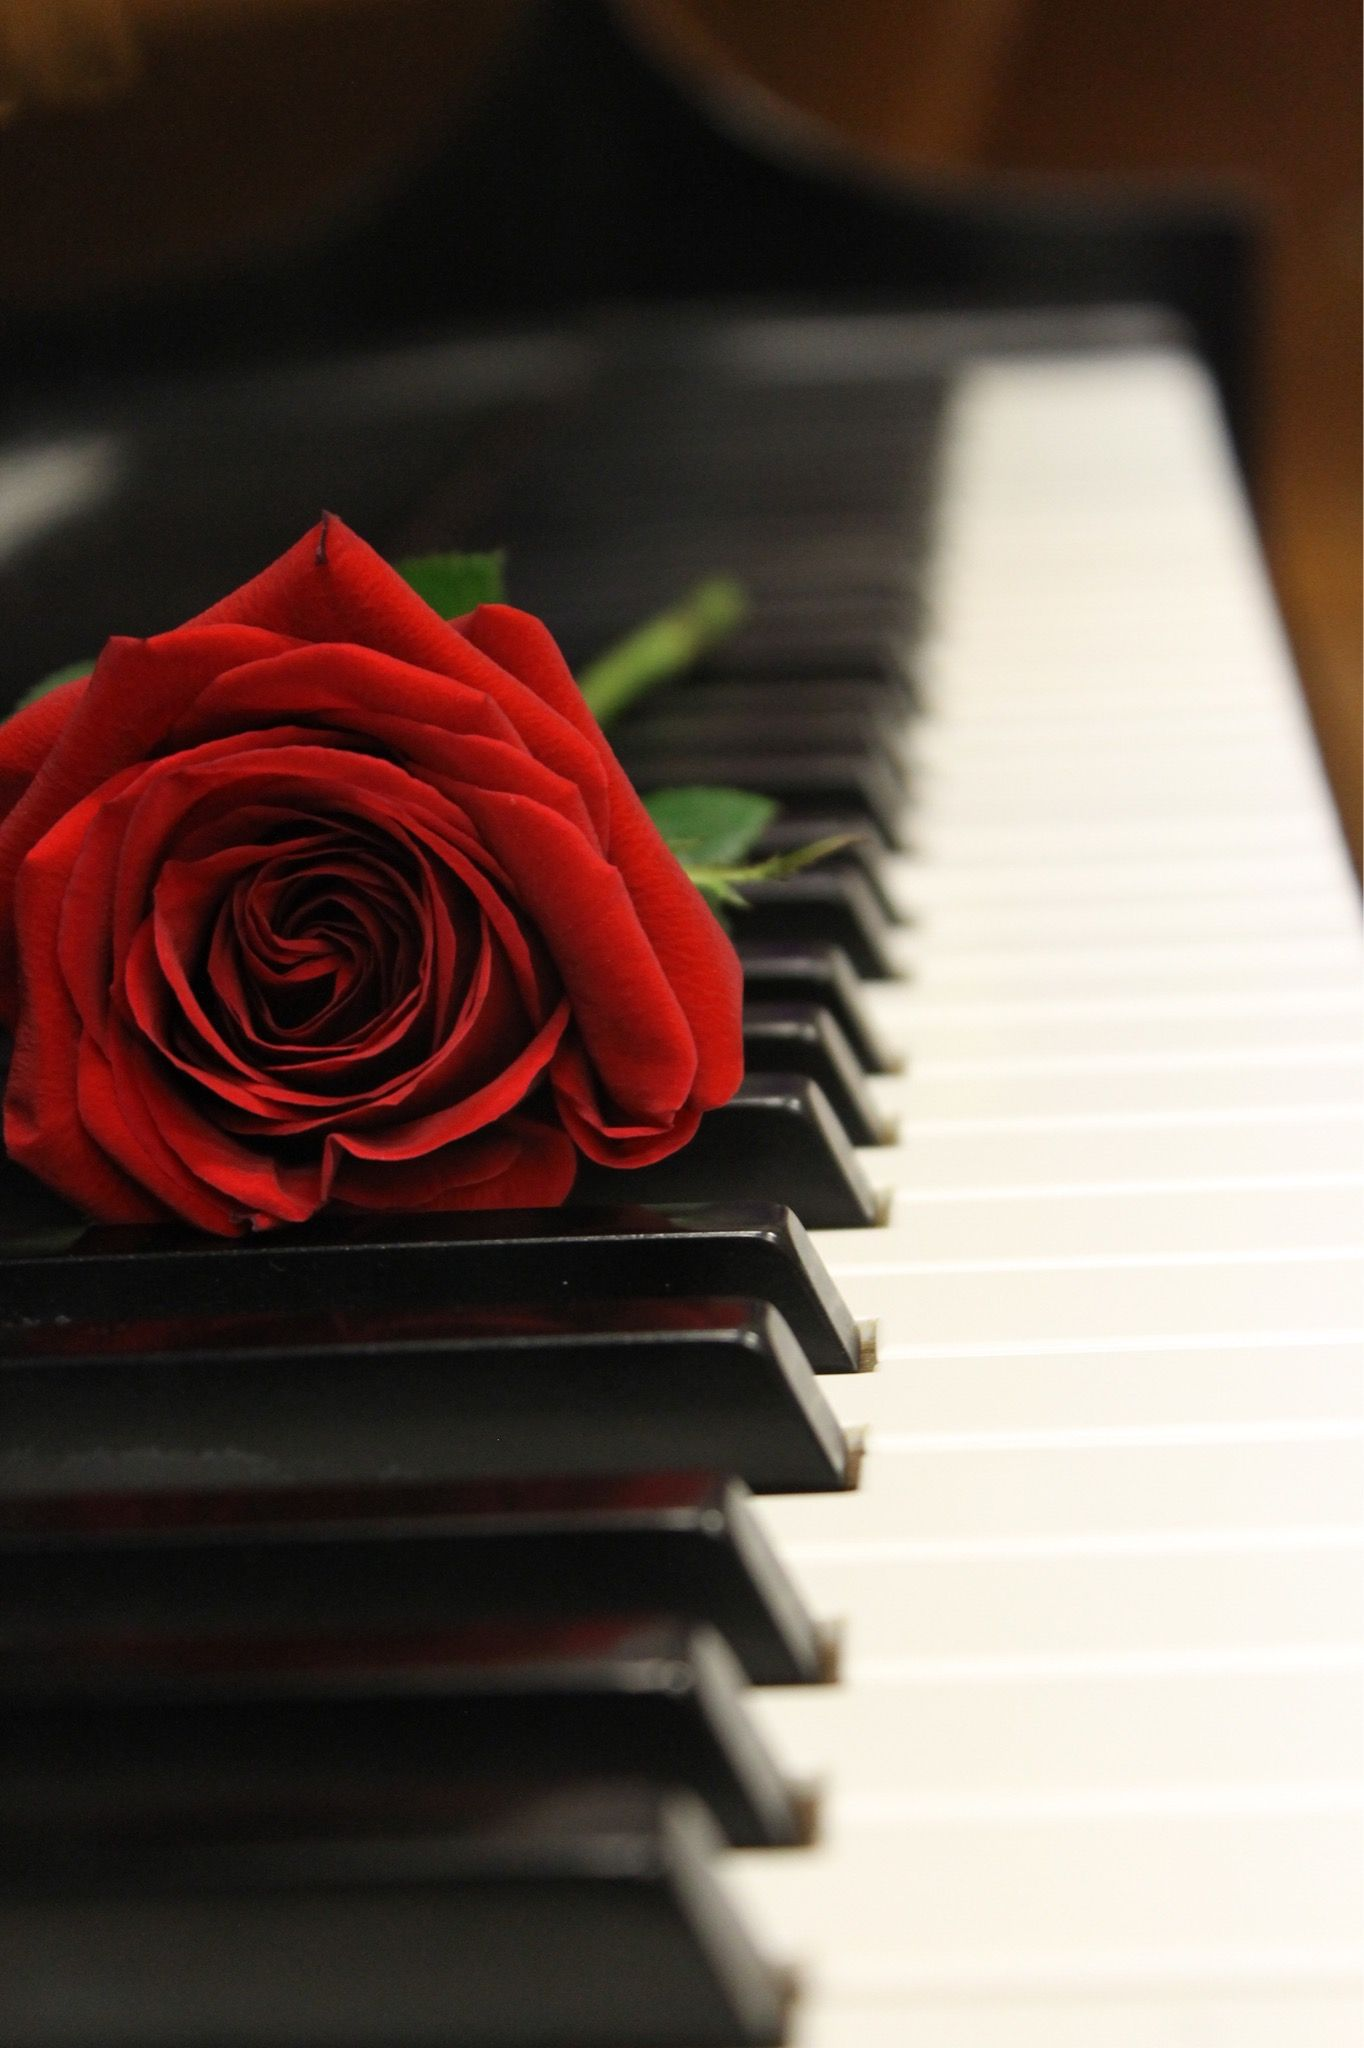 Pin By Brooke Petefish On Artsy Fartsy Music Wallpaper Rose Wallpaper Flowers Photography